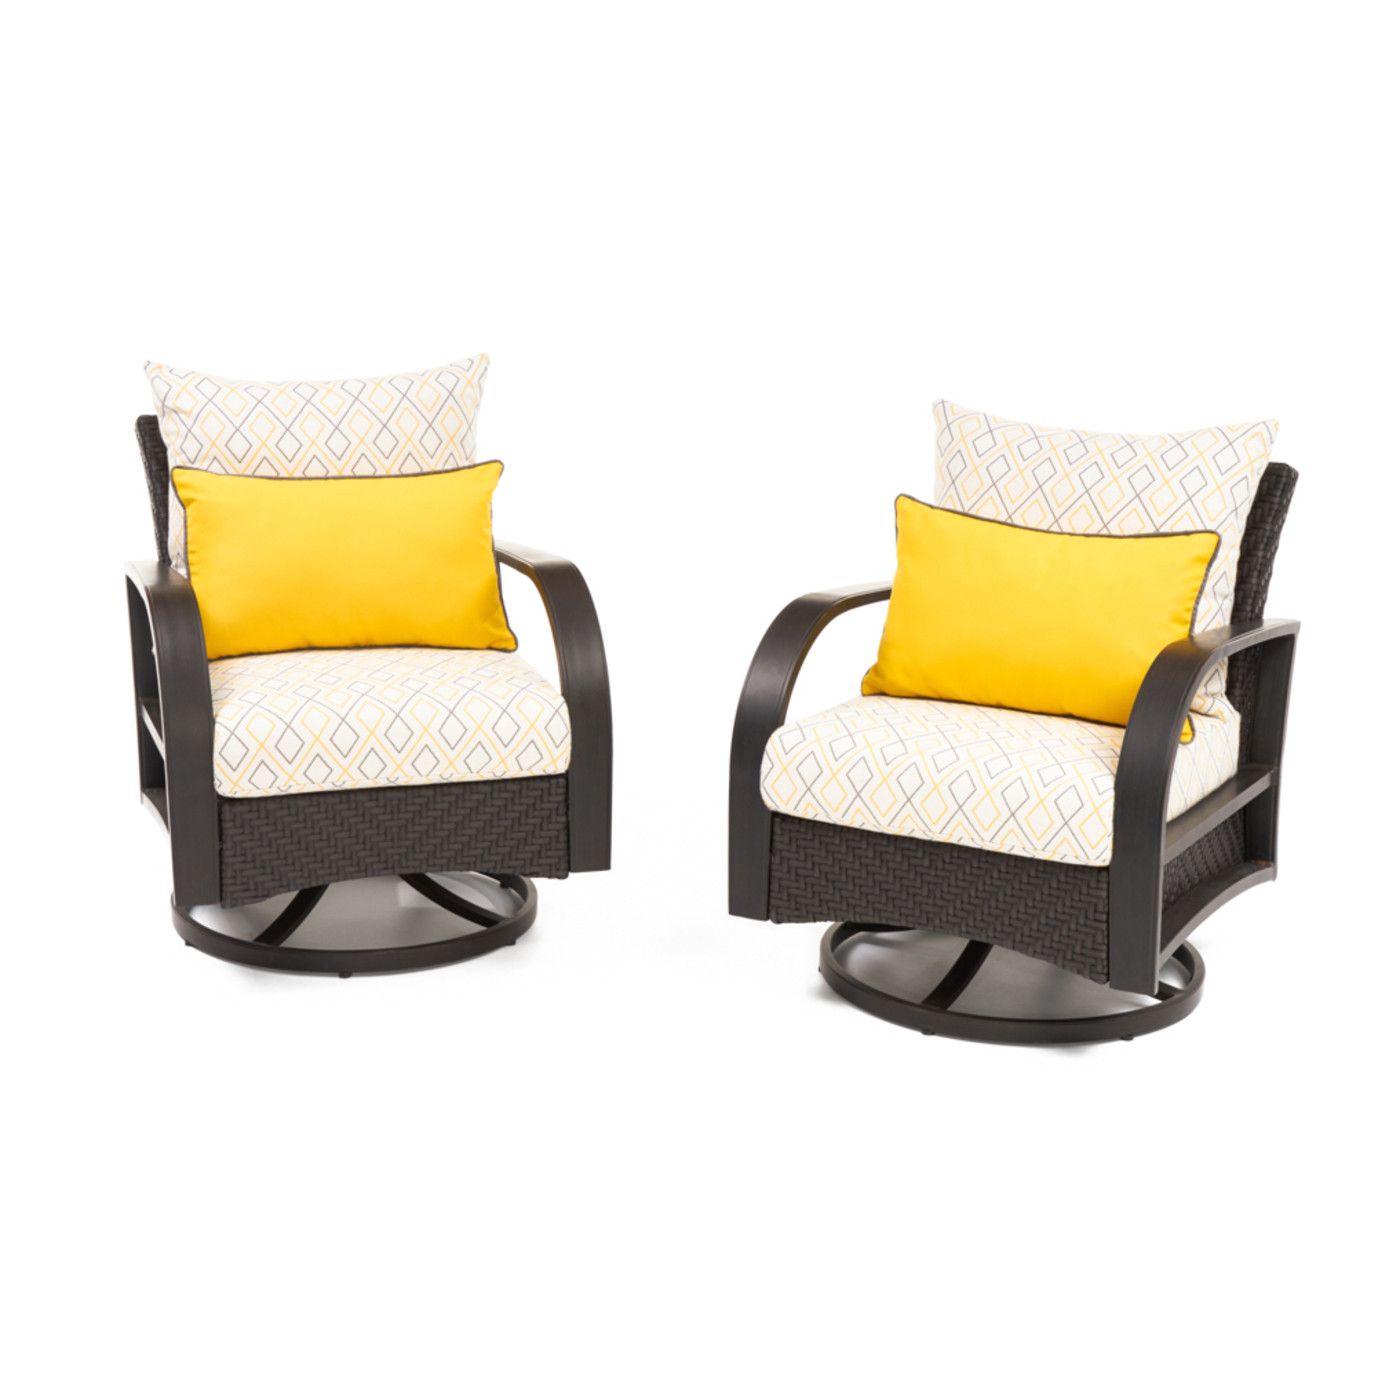 Barcelo™ Deluxe Motion Club Chairs - Sunflower Yellow